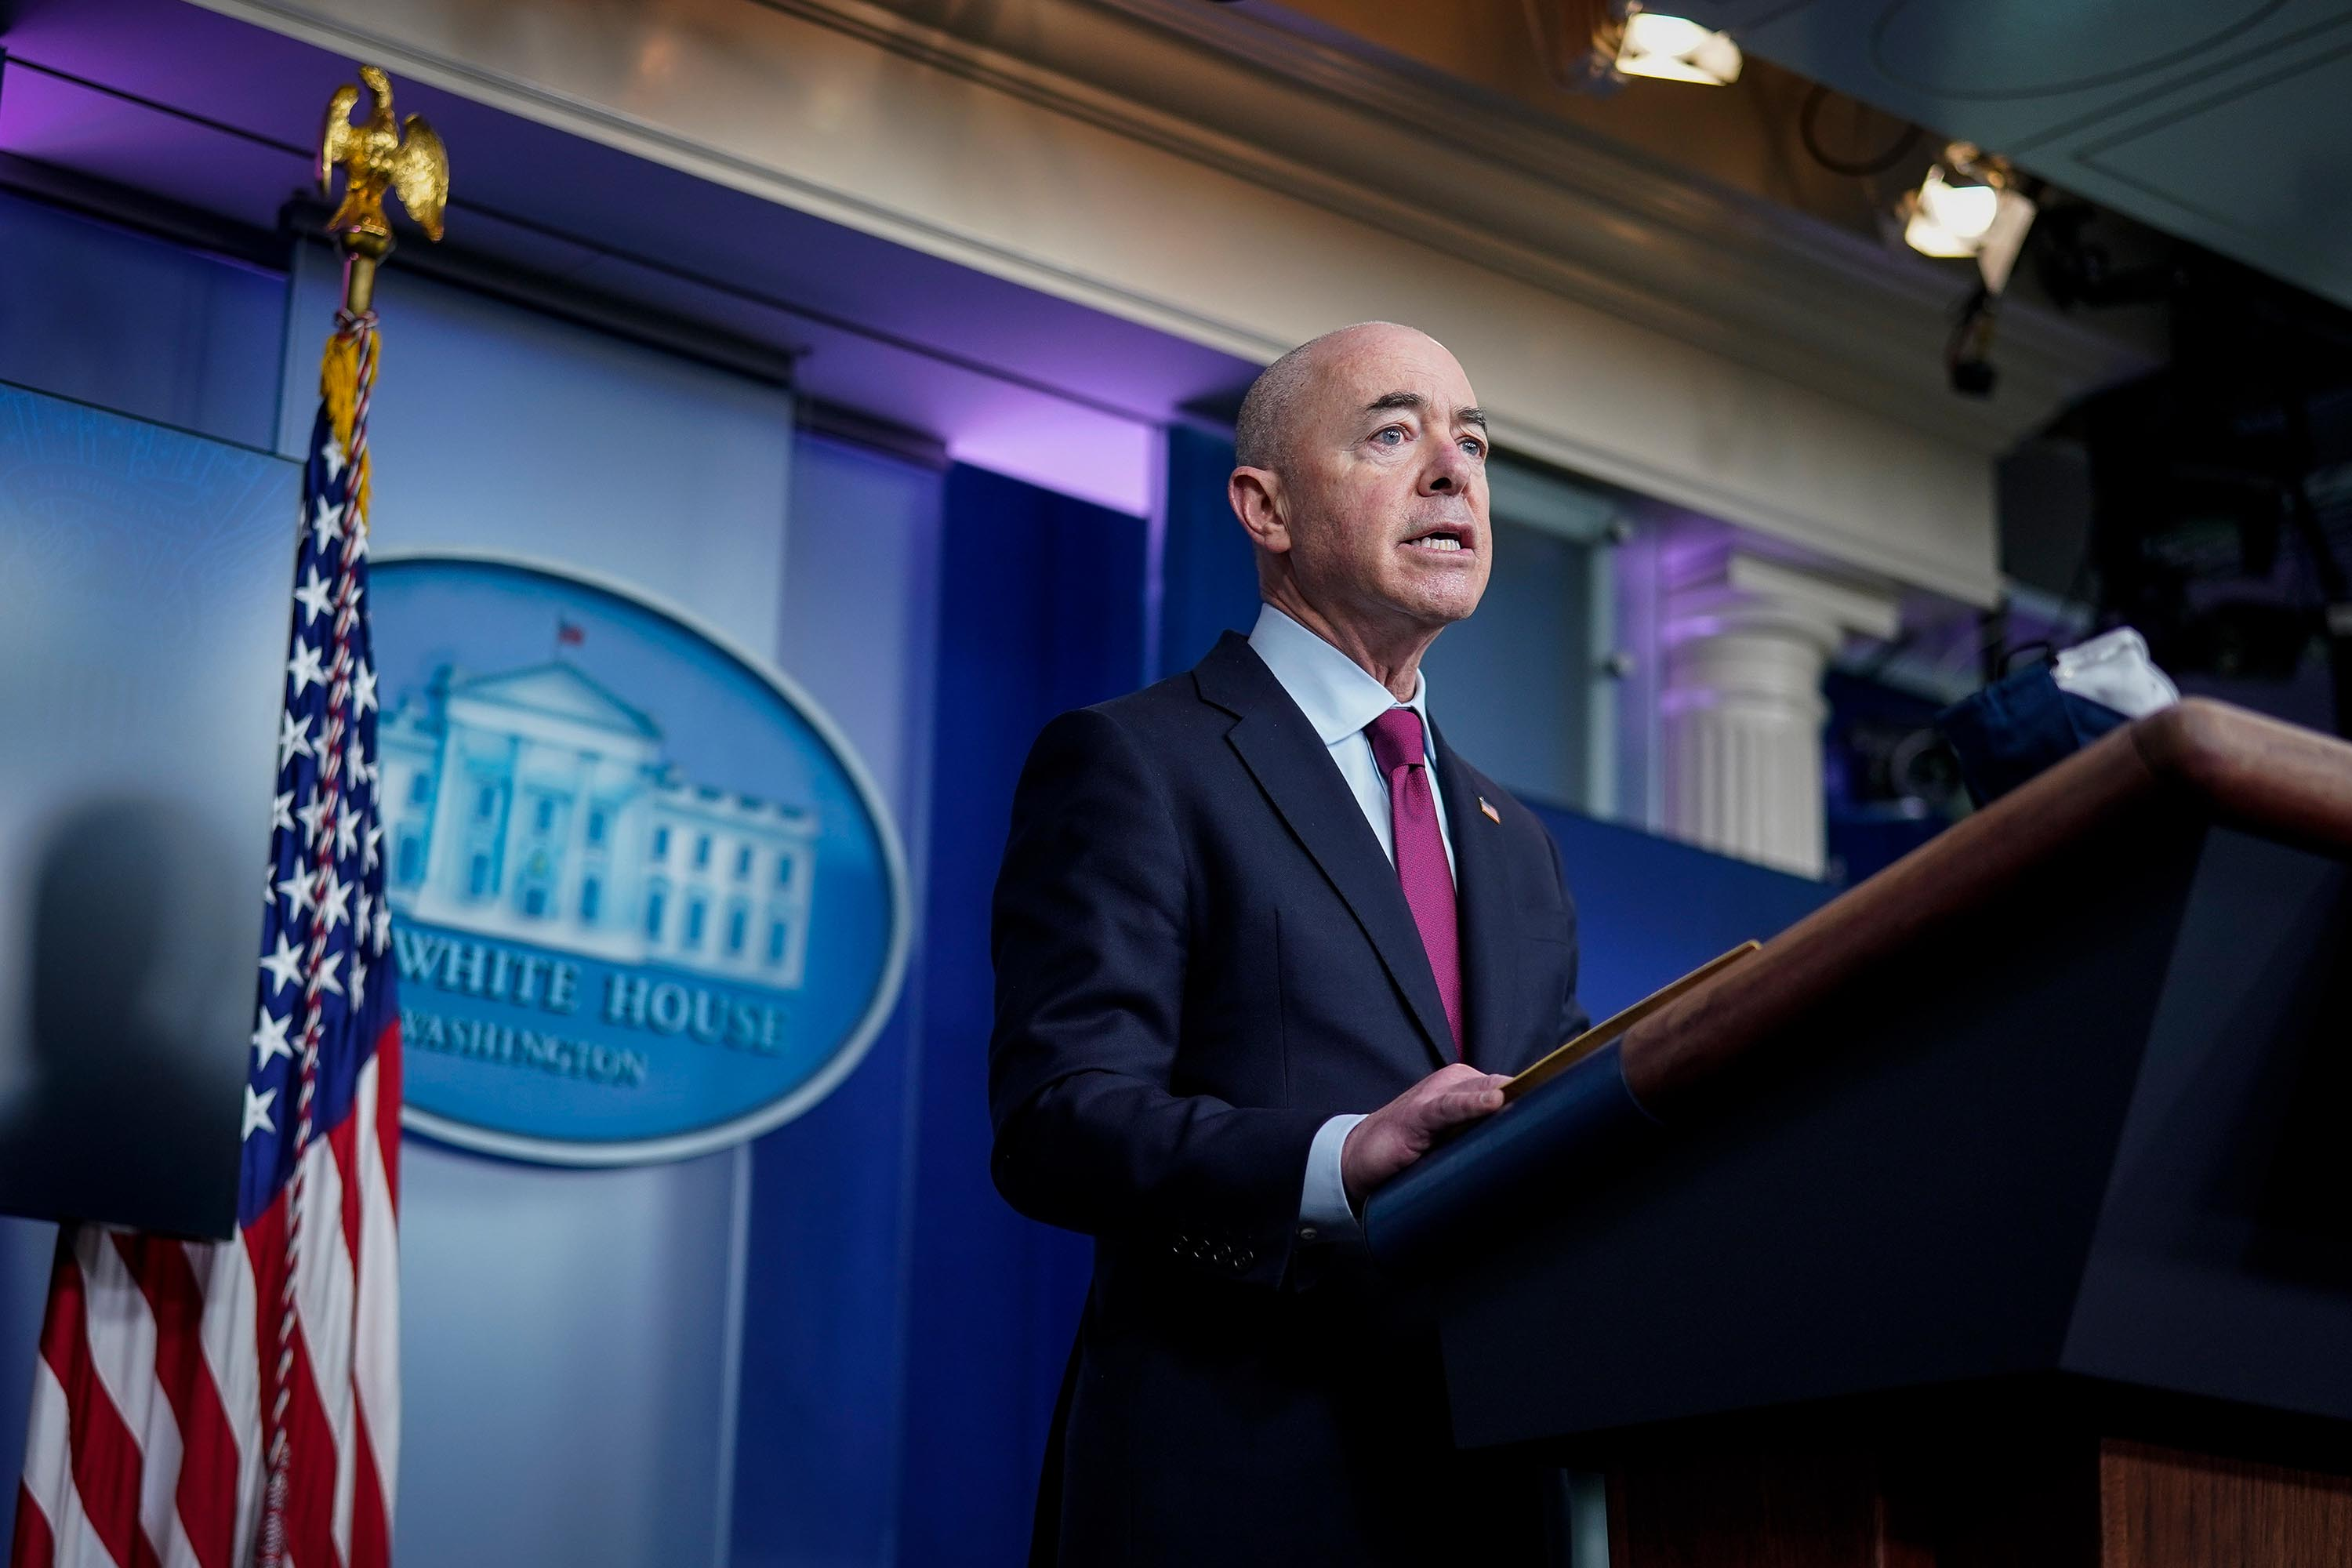 'I have visited the border,' says DHS Secretary in testy exchange over VP role